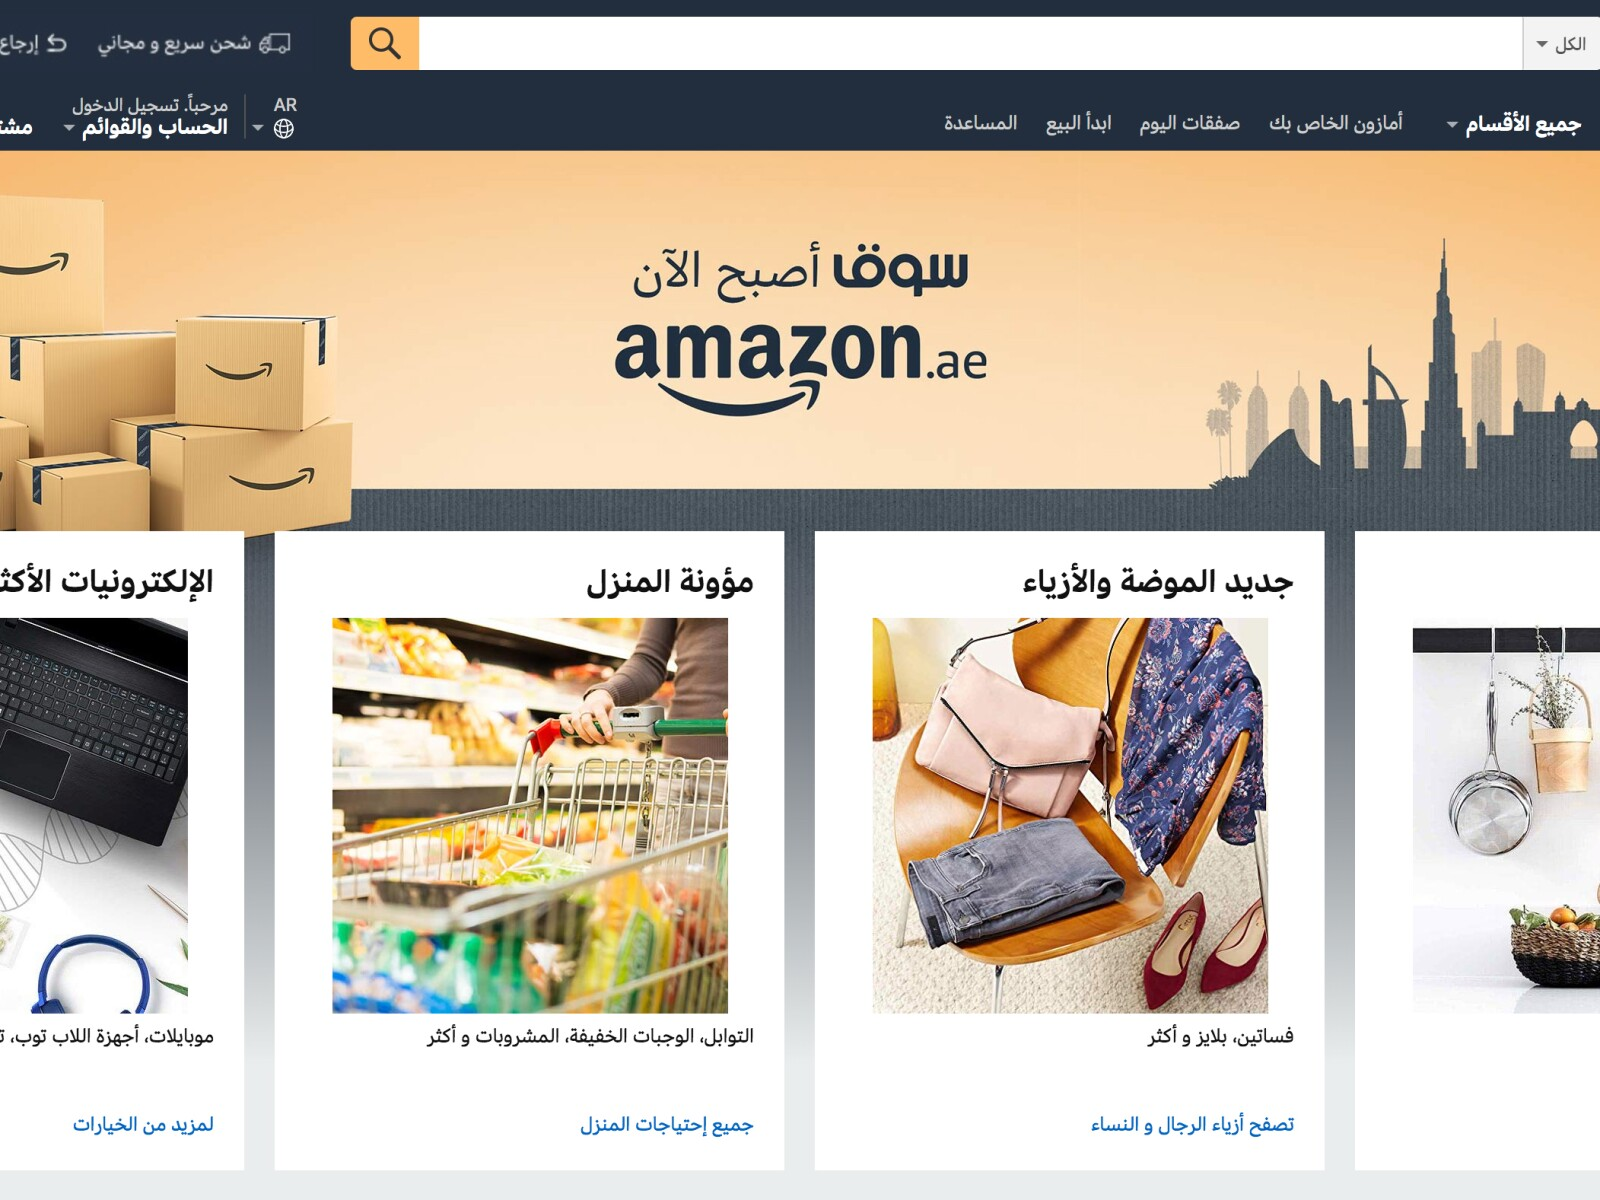 Souq becomes Amazon ae in the UAE